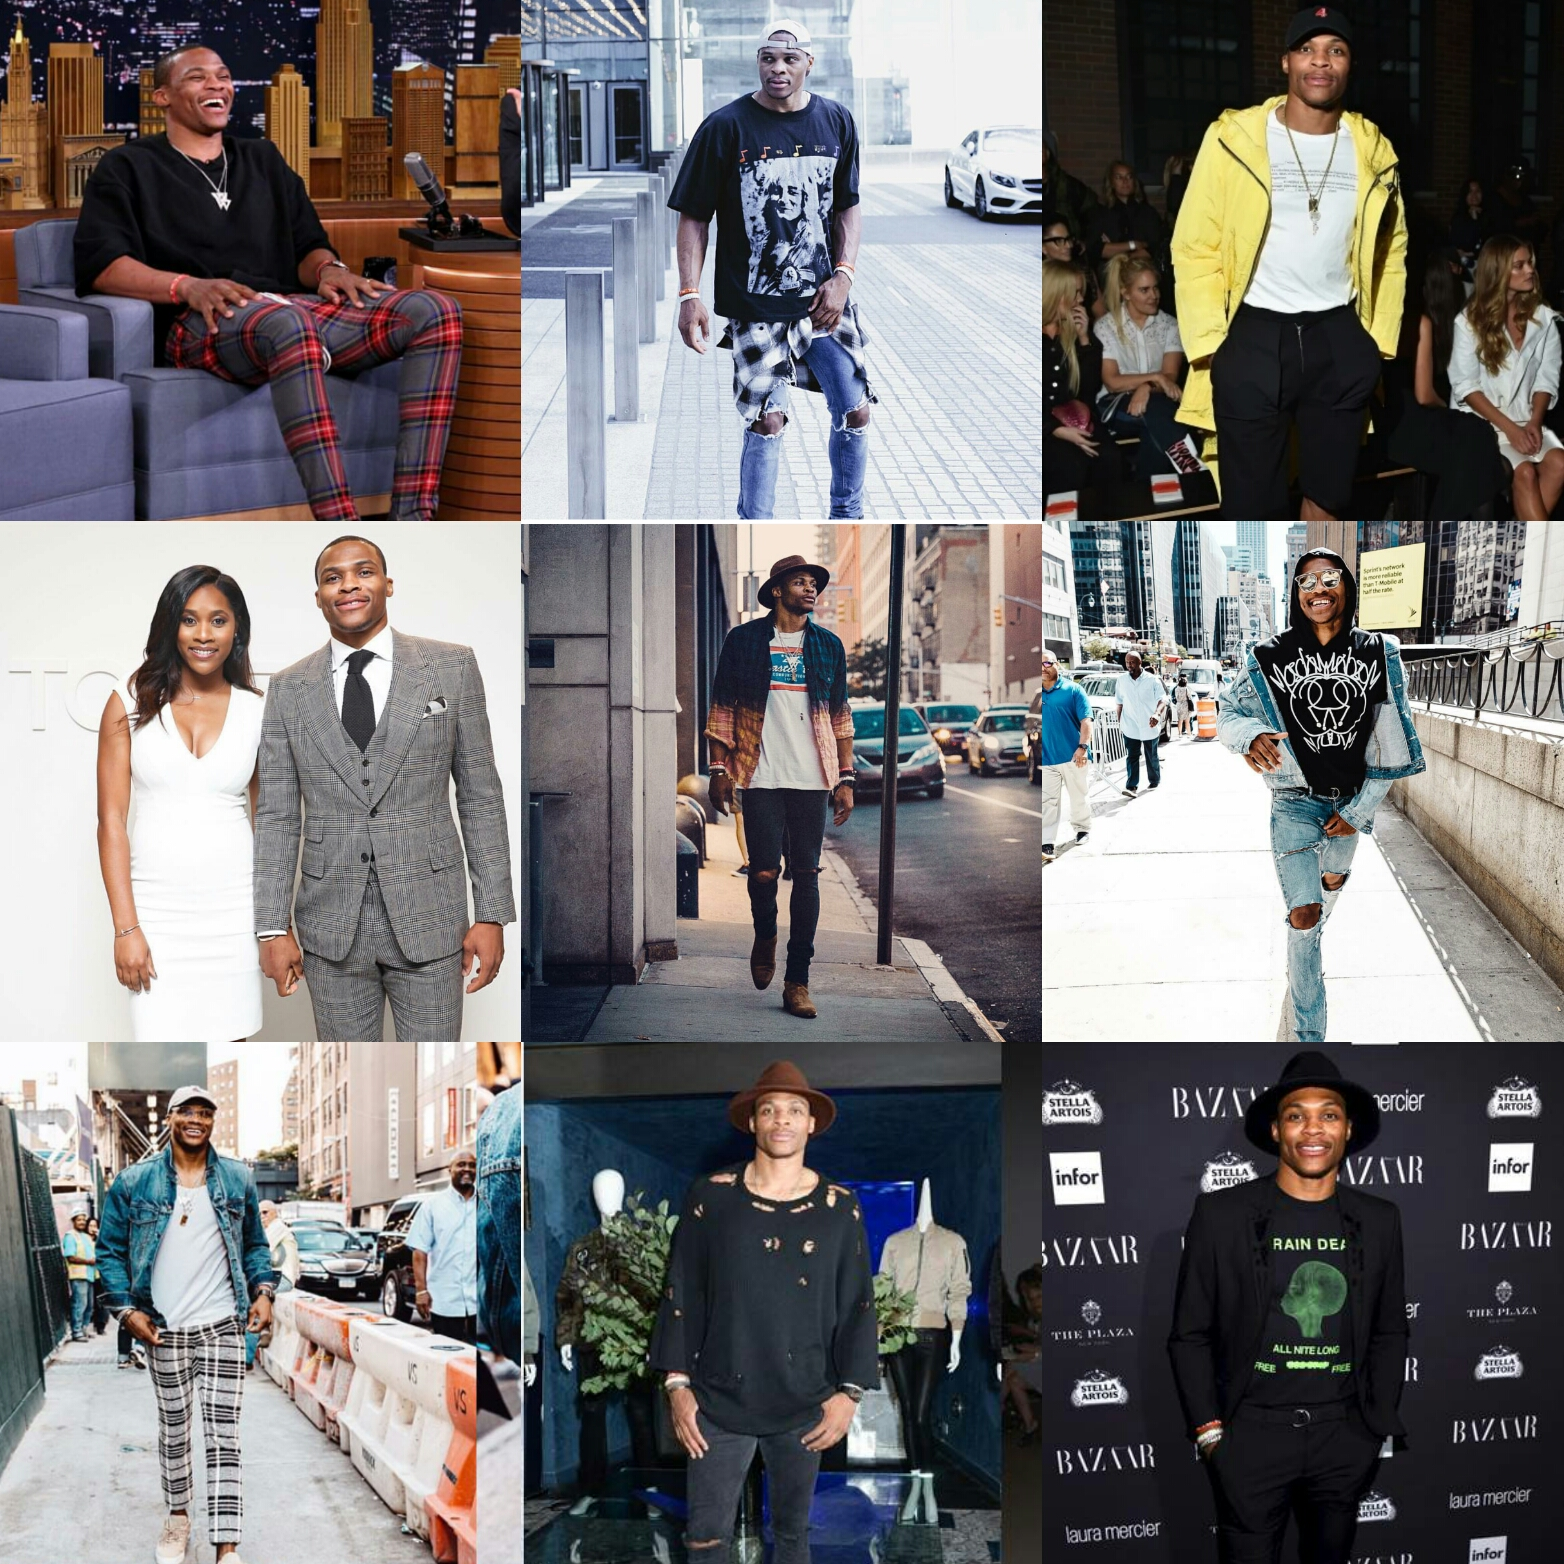 Russell Westbrook's New York Fashion Week Experience Looked Really Exciting!